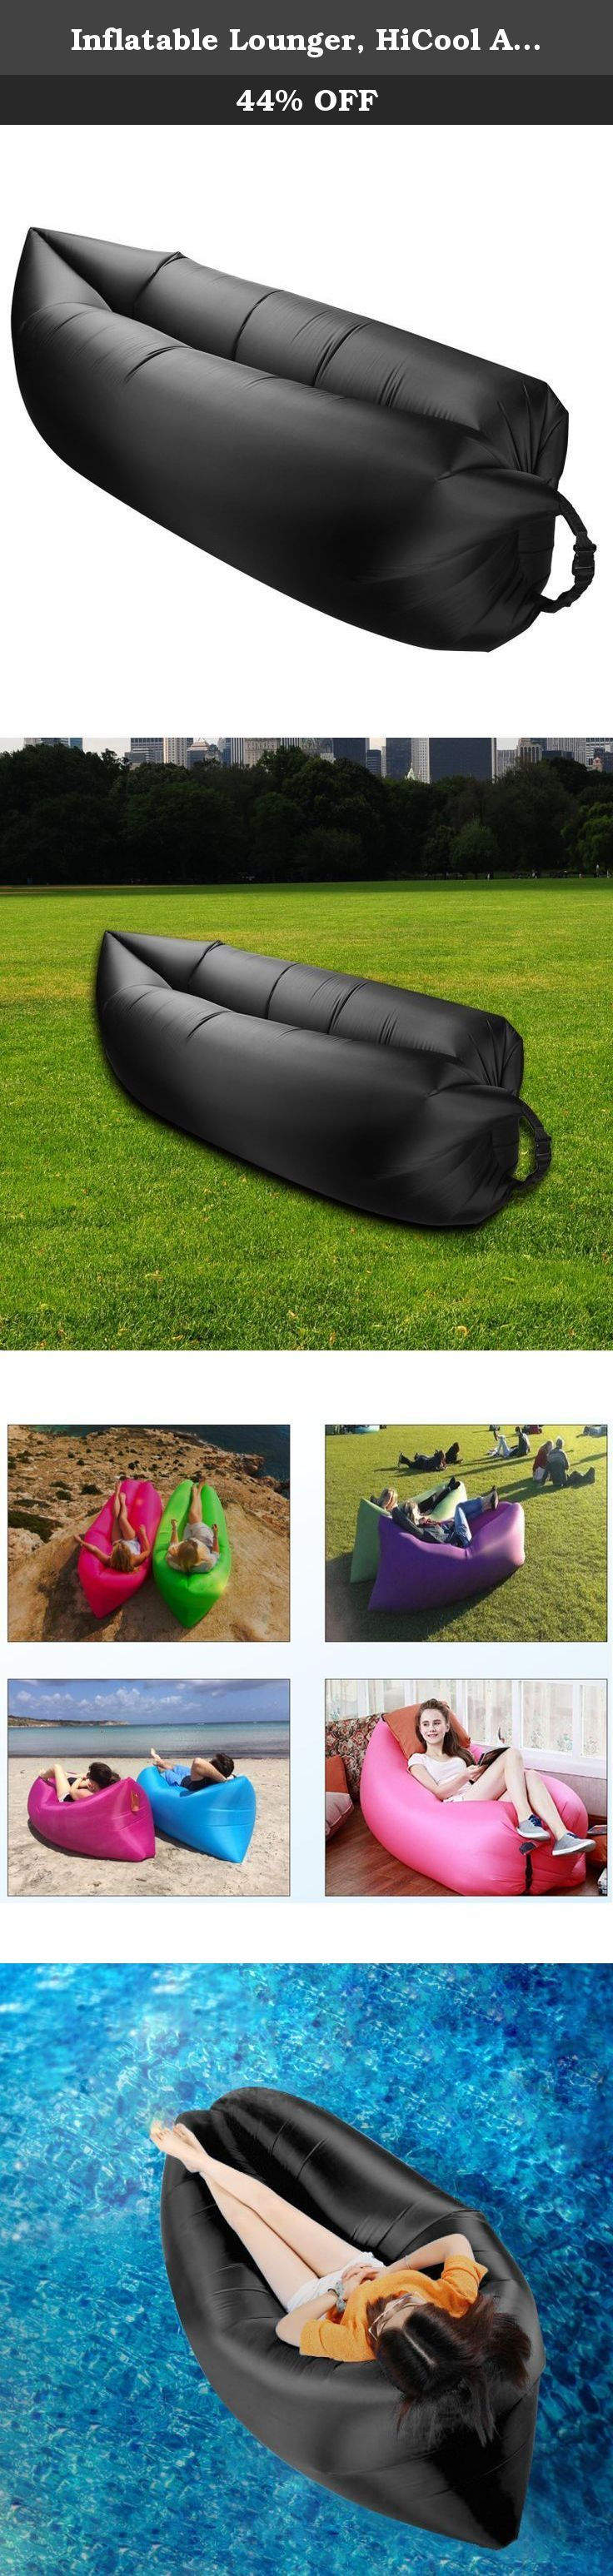 Inflatable Lounger, HiCool Air Lounger Air Bed Beach Sofa, 1 Air Port Easy To Be Filled and Sustainable Up To 12 Hours. A new sealing design , We know the lounger leak always because of sealing part, Compared with the old version, you could check the pictures(The old and new contrast figure) in the link, Our new inflatable lounger is designed for gas leakage and inflatable difficult, completely fully solved the two problems, Genuine materials and professional technology is withstand…